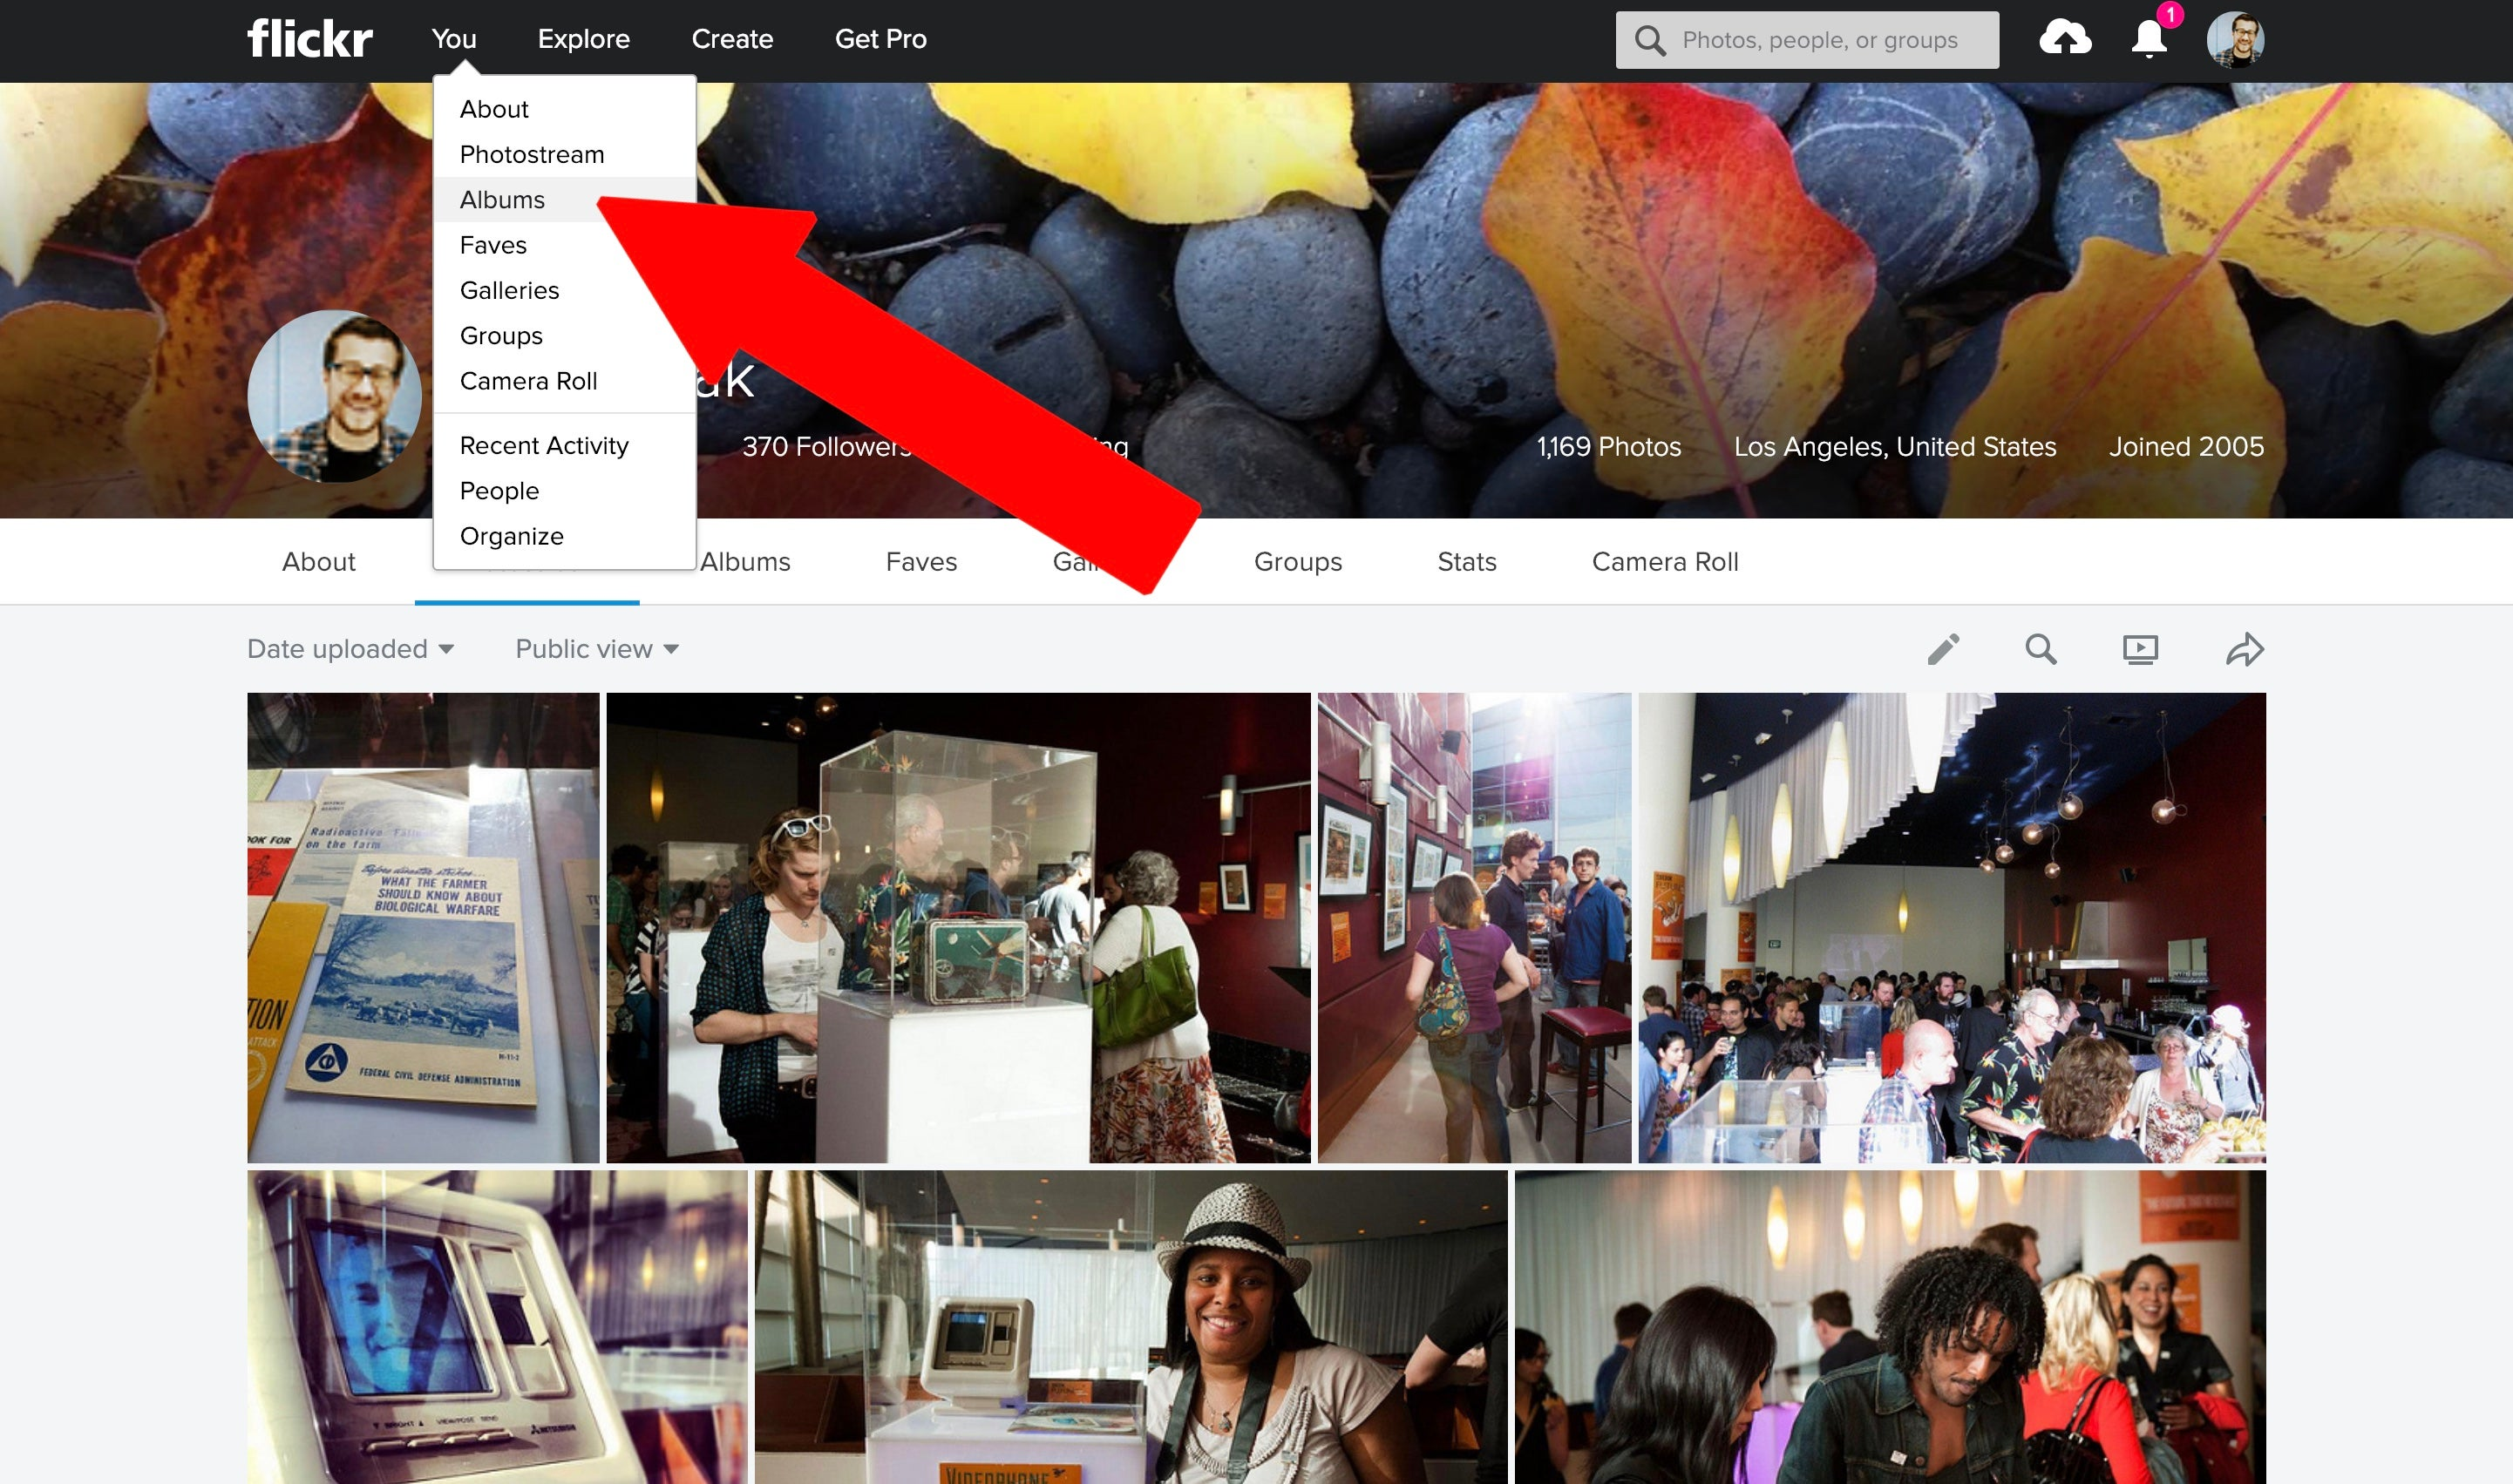 Last Call: Flickr Starts Deleting Your Old Photos Tomorrow